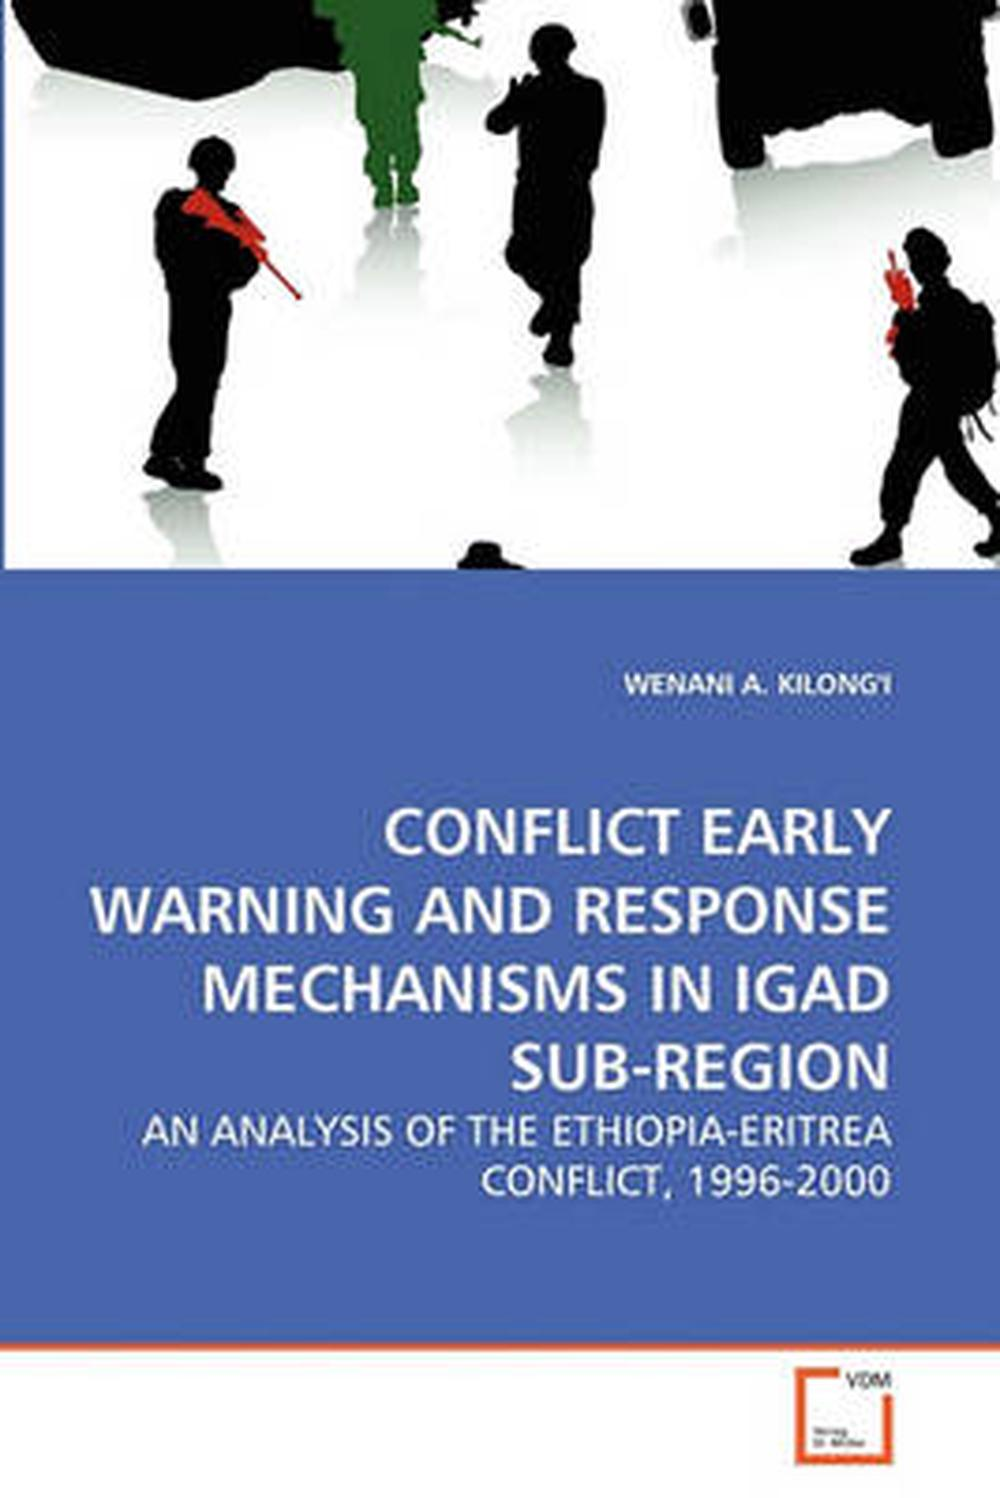 Conflict-Early-Warning-and-Response-Mechanisms-in-Igad-Sub-R-AN-ANALYSIS-OF-THE